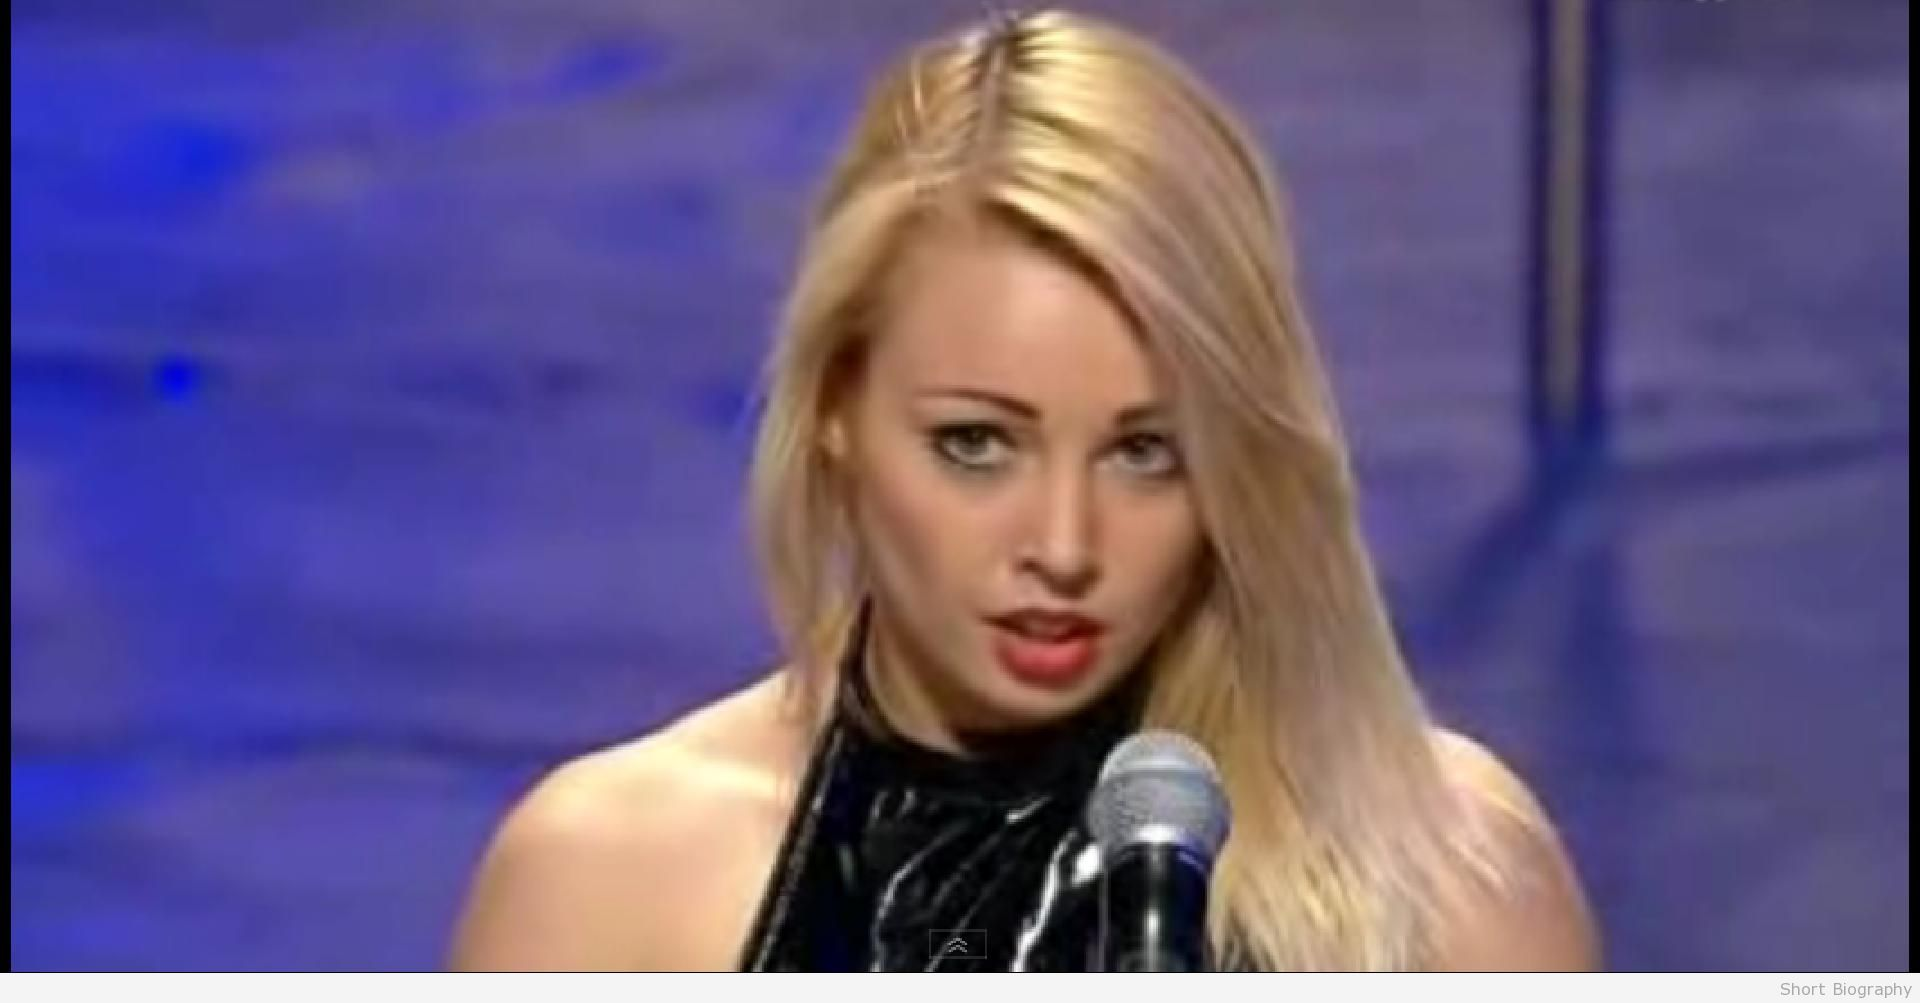 Anastasia Sokolova on Ukraines got talent.